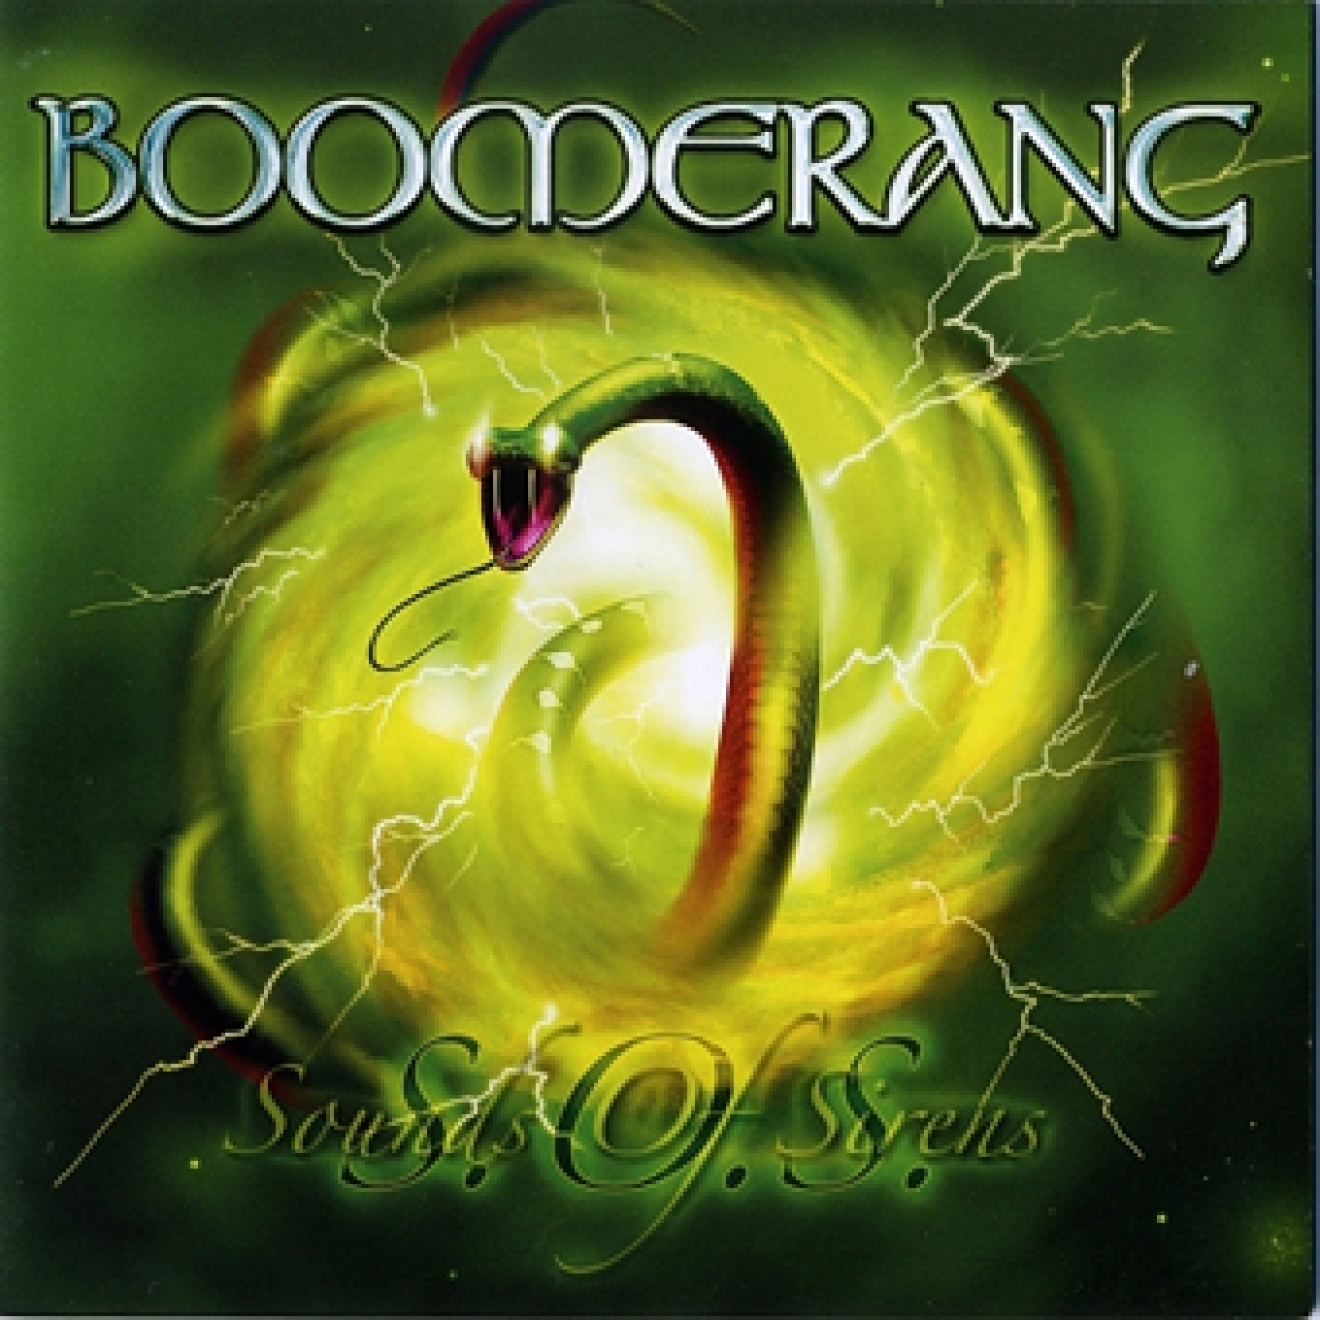 Boomerang-Sounds of Sirens